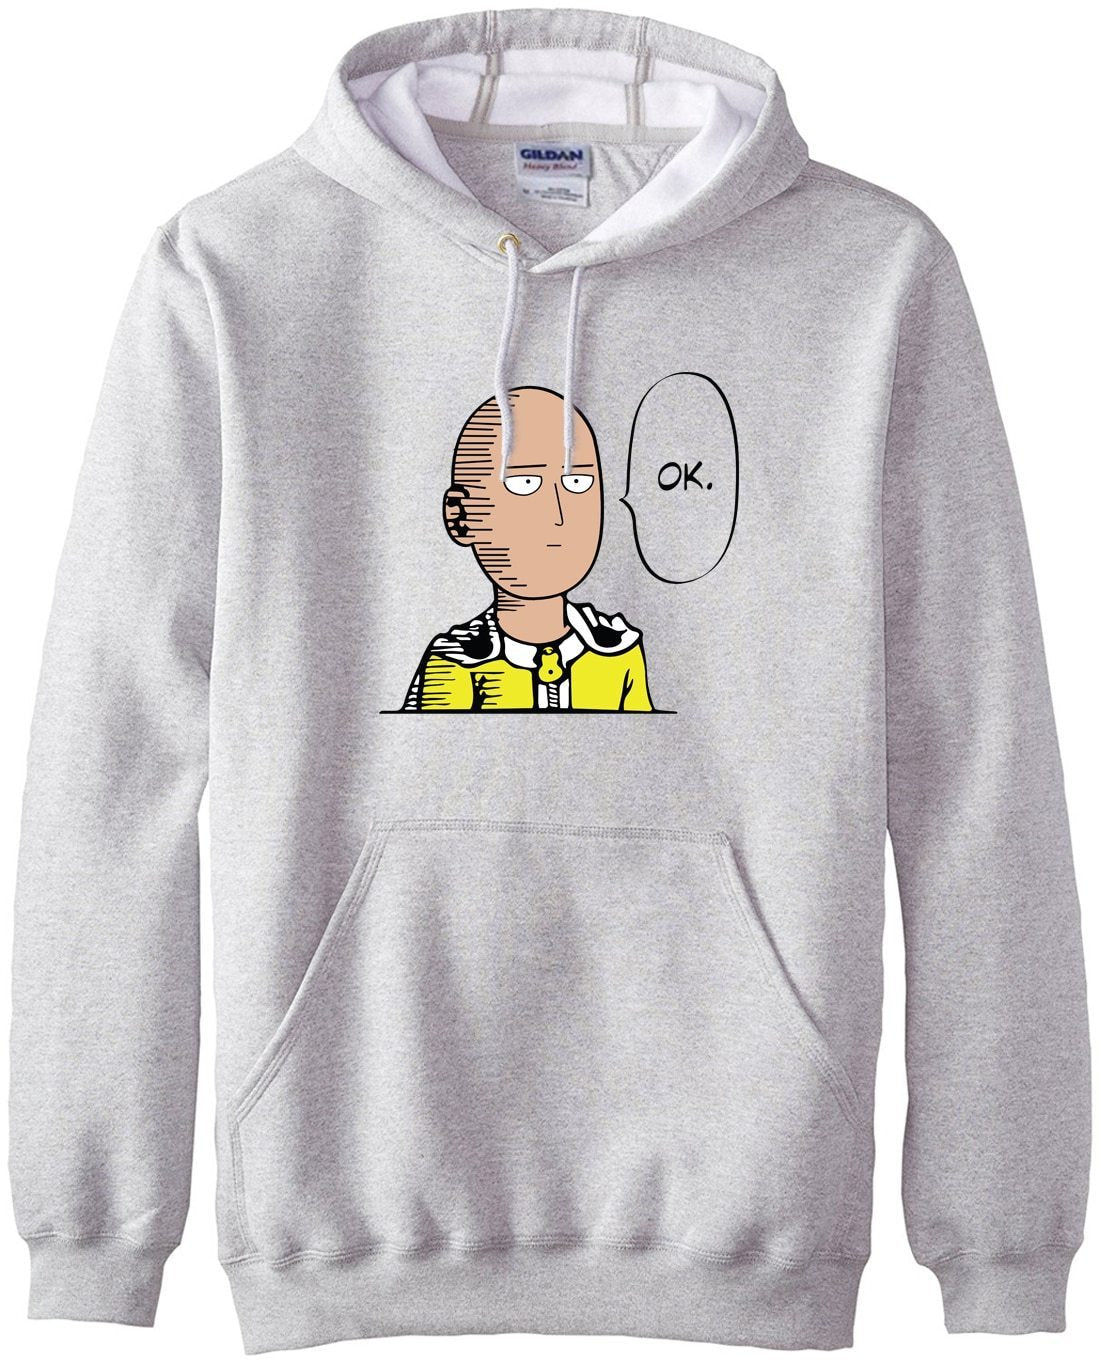 new arrival Anime One Punch Man Hoodies OK Printed Men Sweatshirts 2017dresskily-dresskily